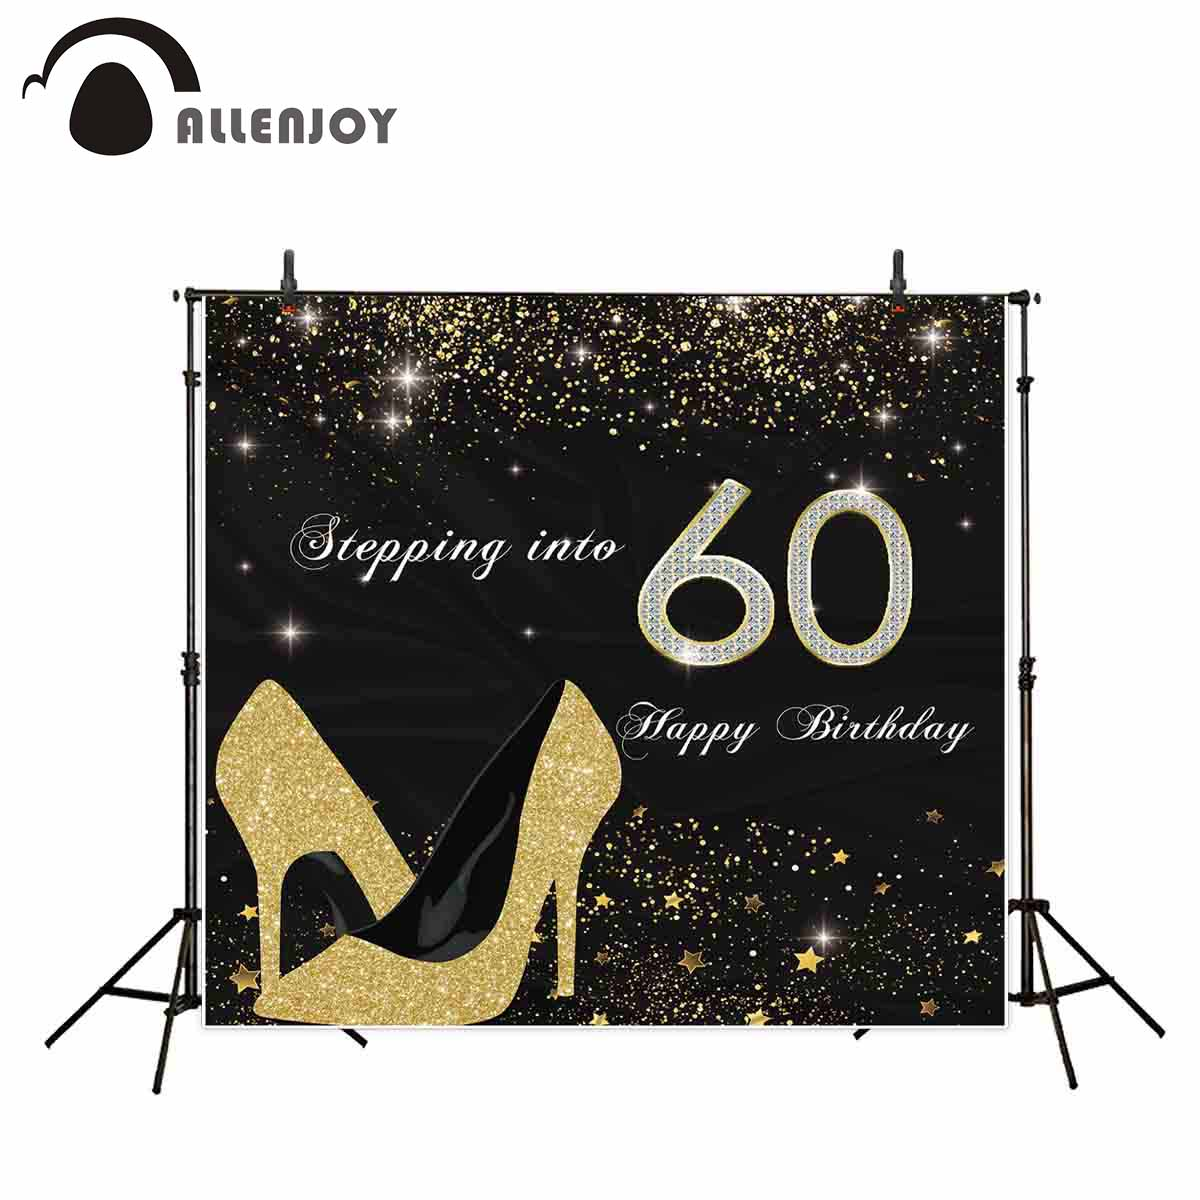 Allenjoy <font><b>birthday</b></font> <font><b>backdrops</b></font> photography black gitter step into <font><b>60th</b></font> High heels party photocall photo background photophone image